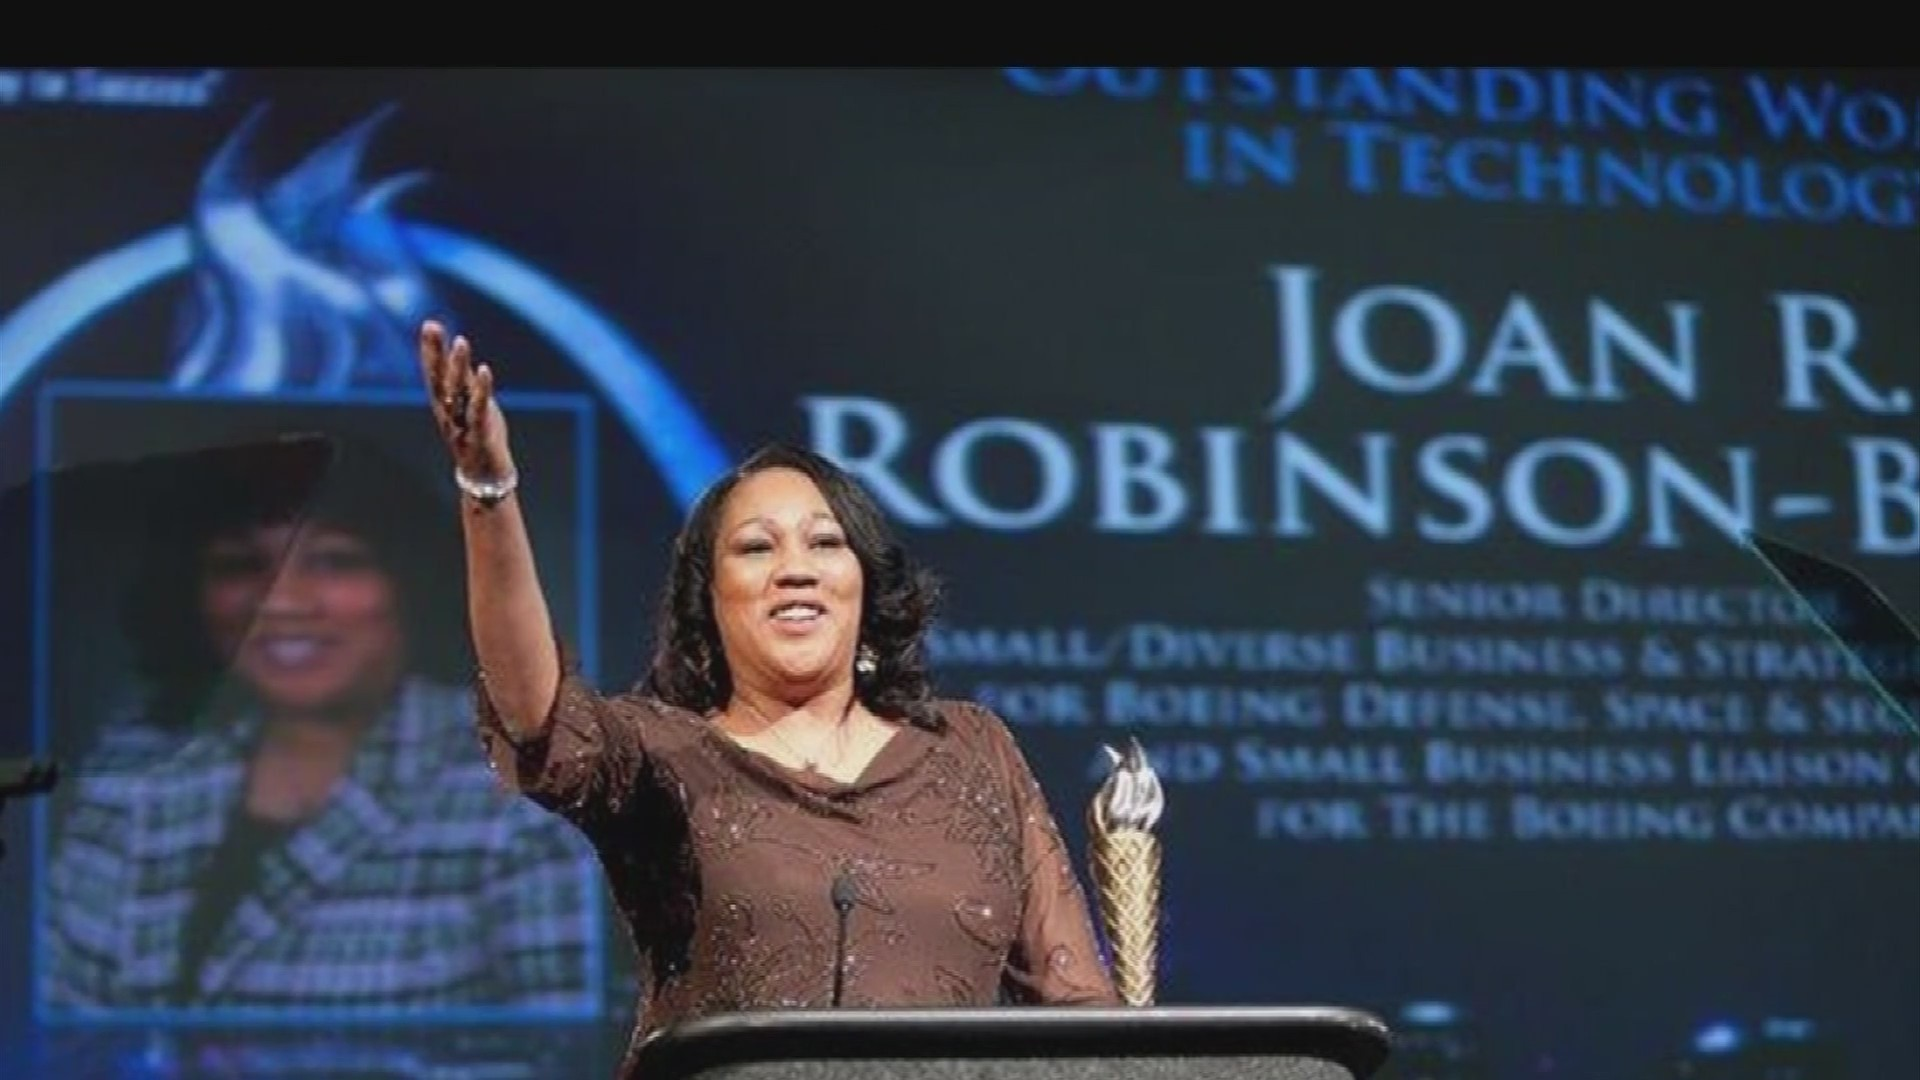 VIDEO: Boeing's Joan Robinson-Berry